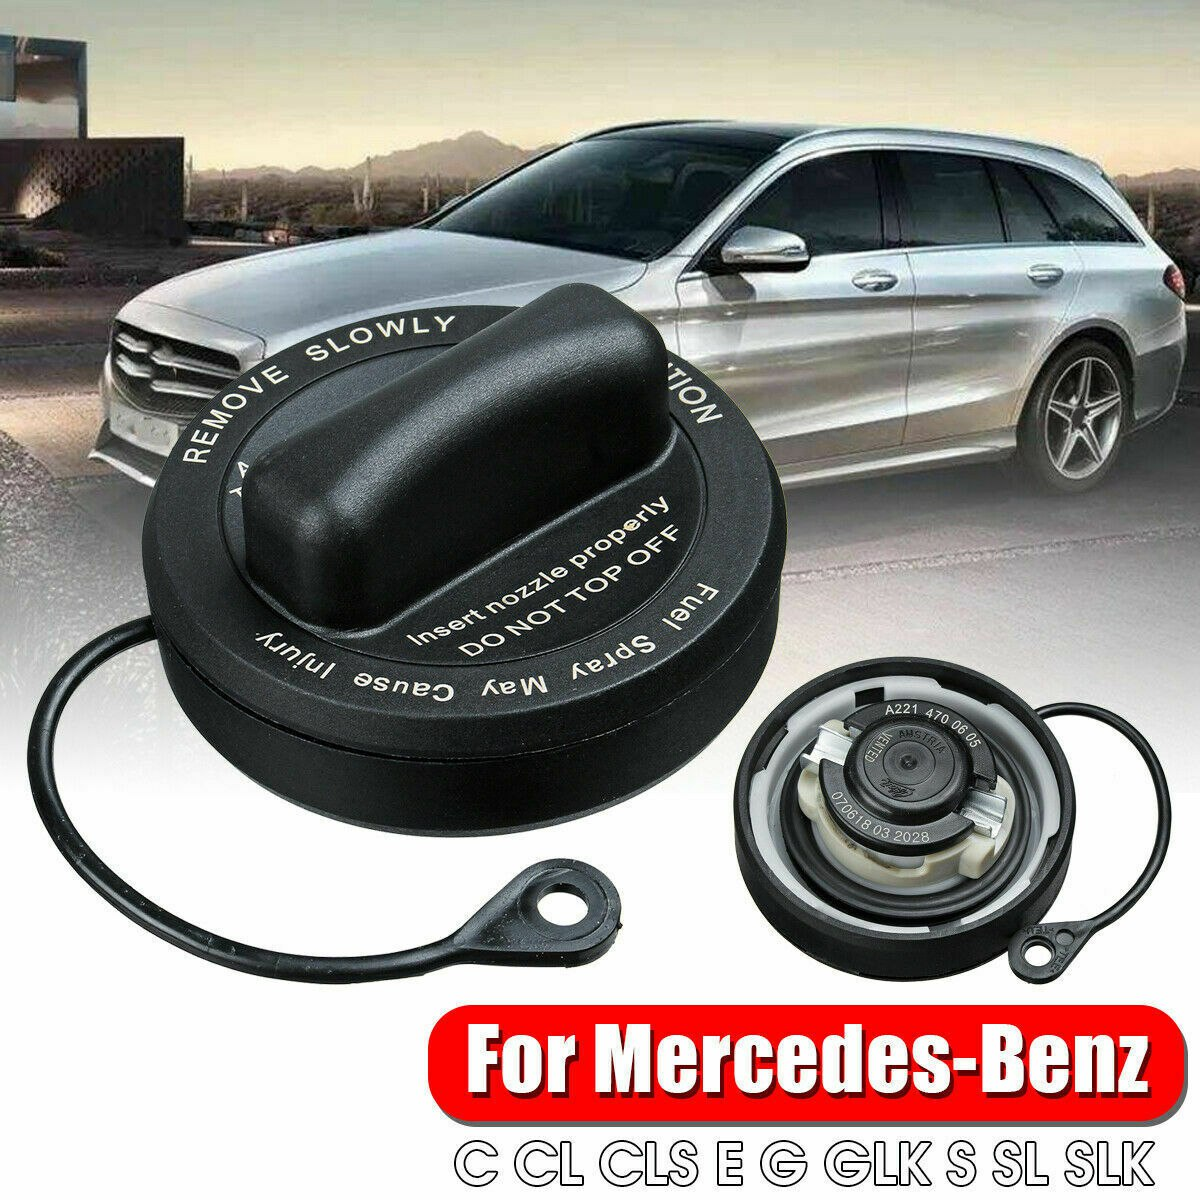 For Mercedes C CL CLS E G GLK S SL SLK-Class Fuel Tank Gas Filler Cap Factory